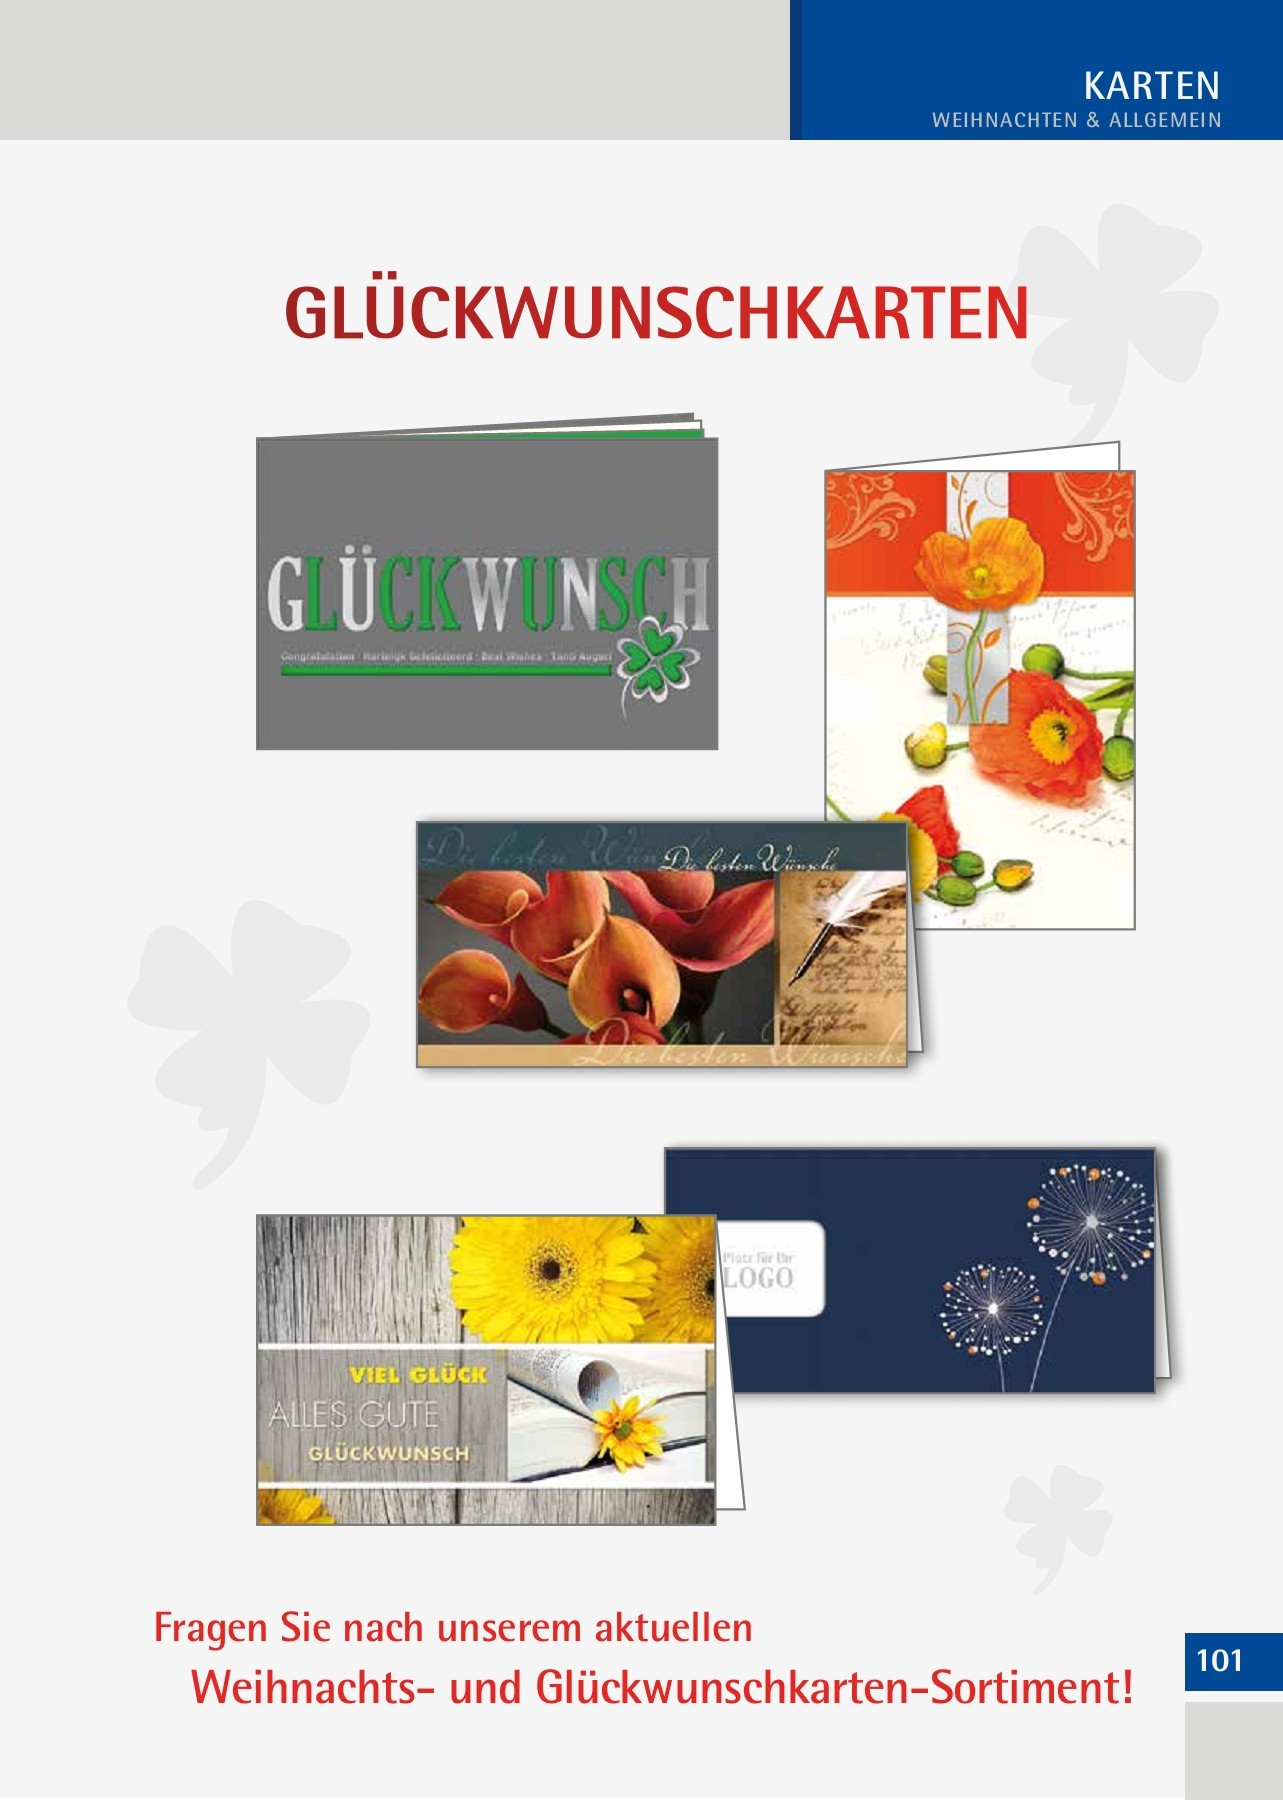 Tischquerkalender 2017 Buff Werbekalender 2017 Pages 101 103 Text Version Fliphtml5